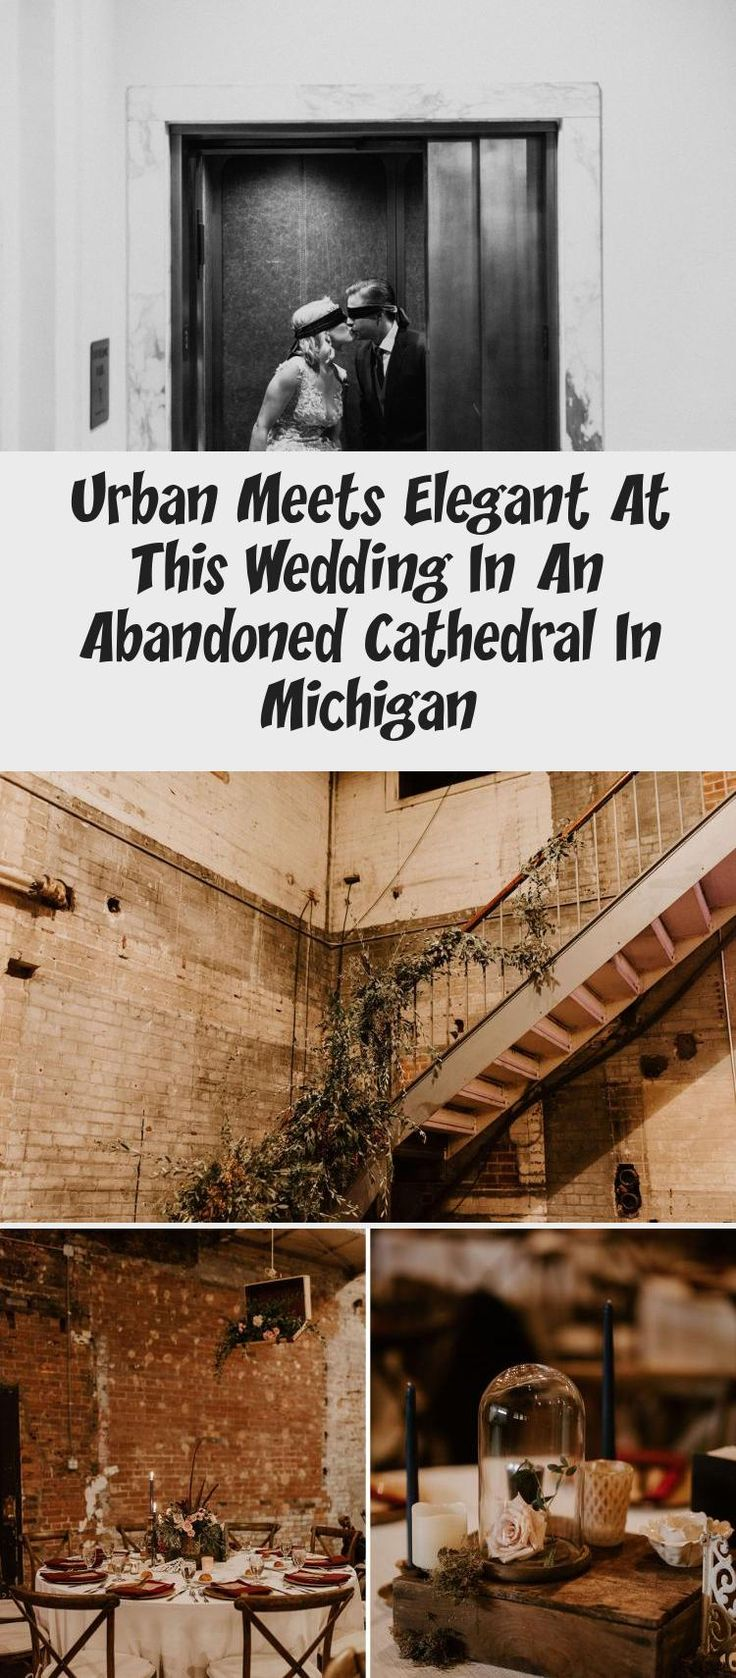 Urban Meets Elegant at this Wedding in an Abandoned Cathedral in Michigan - Green Wedding Shoes #BridesmaidDressesPlusSize #BridesmaidDressesDustyRose #BridesmaidDressesCountry #ChampagneBridesmaidDresses #AfricanBridesmaidDresses